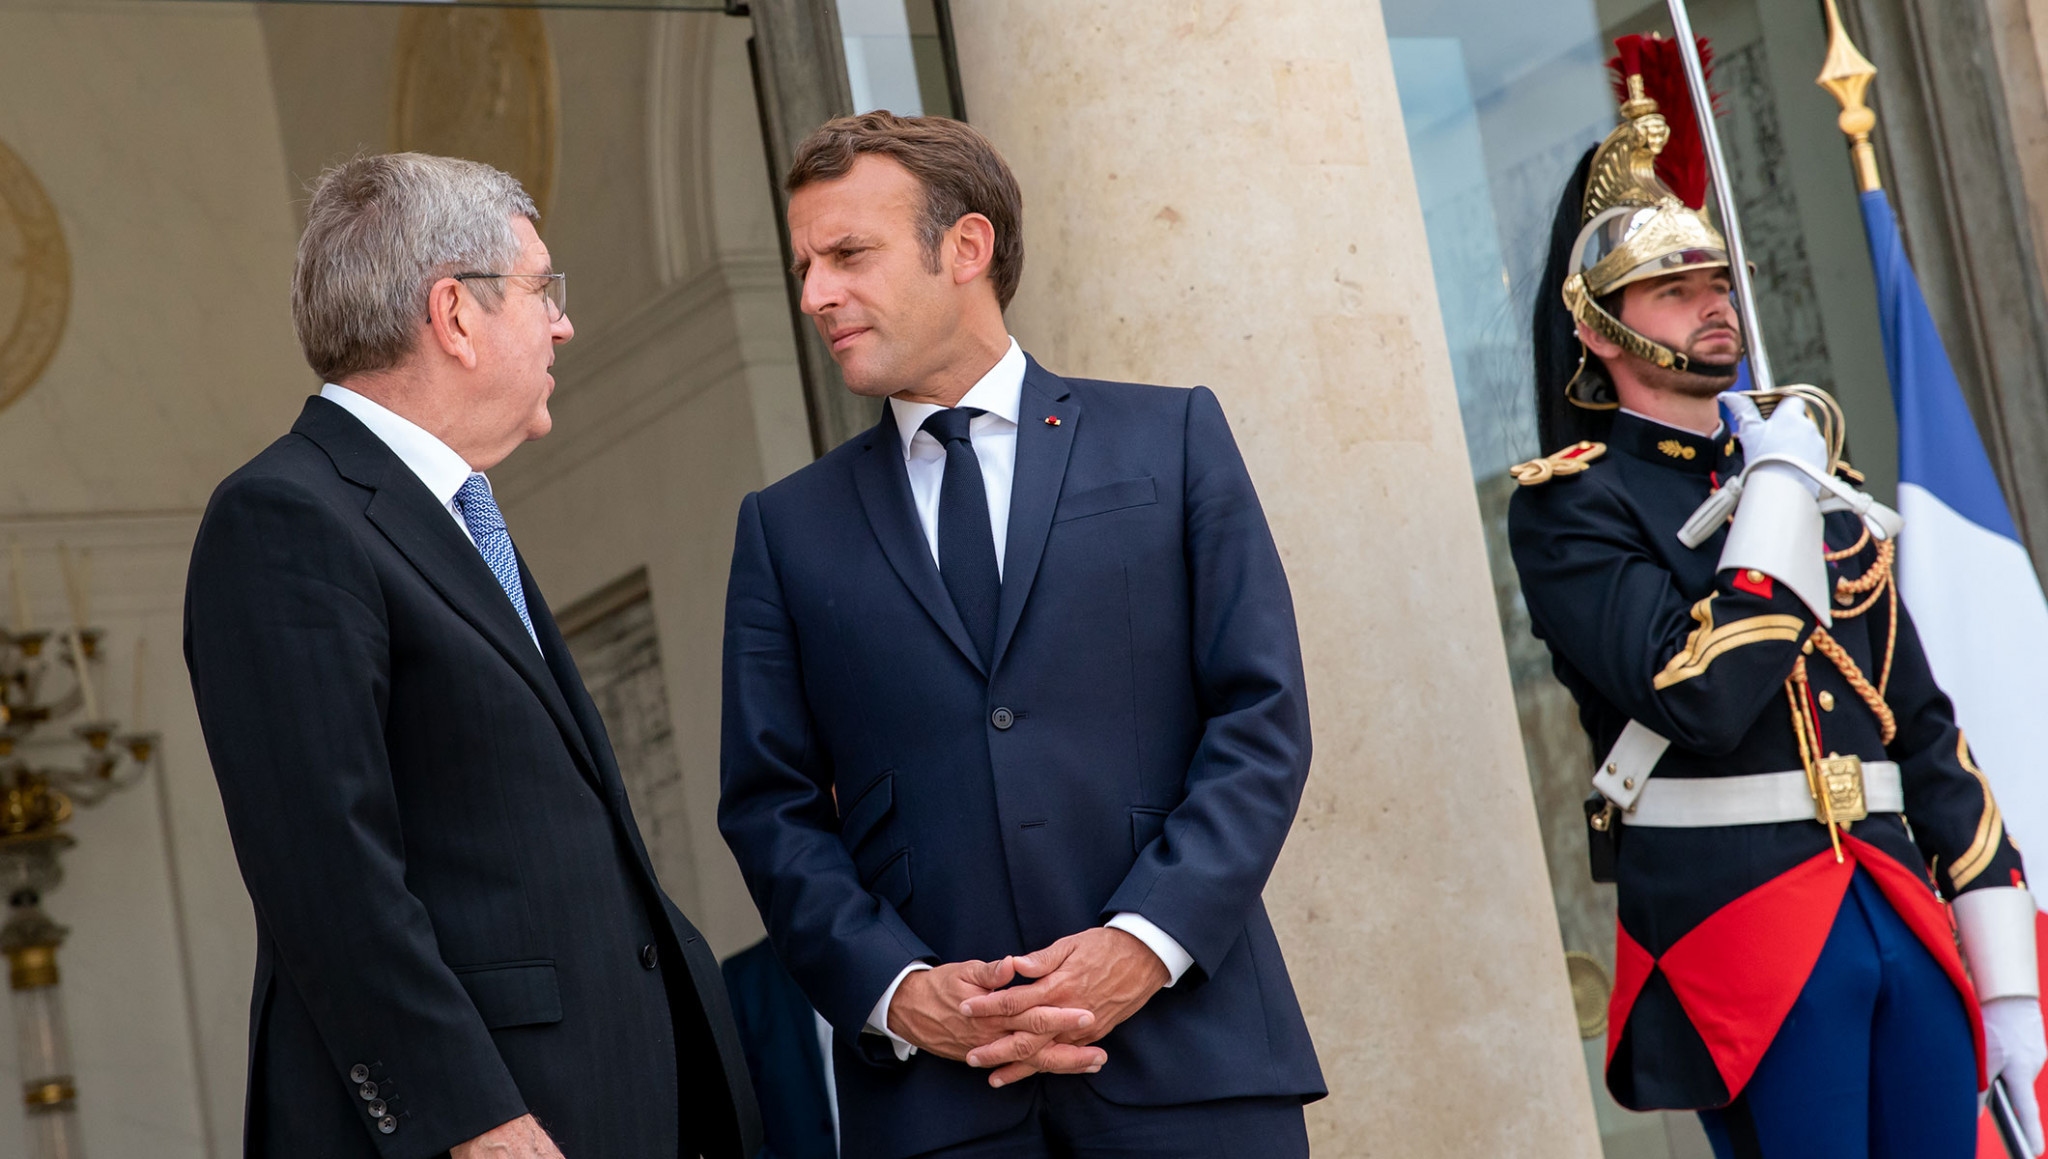 French President Emmanuel Macron welcomed Thomas Bach to the Élysée Palace ©President of France